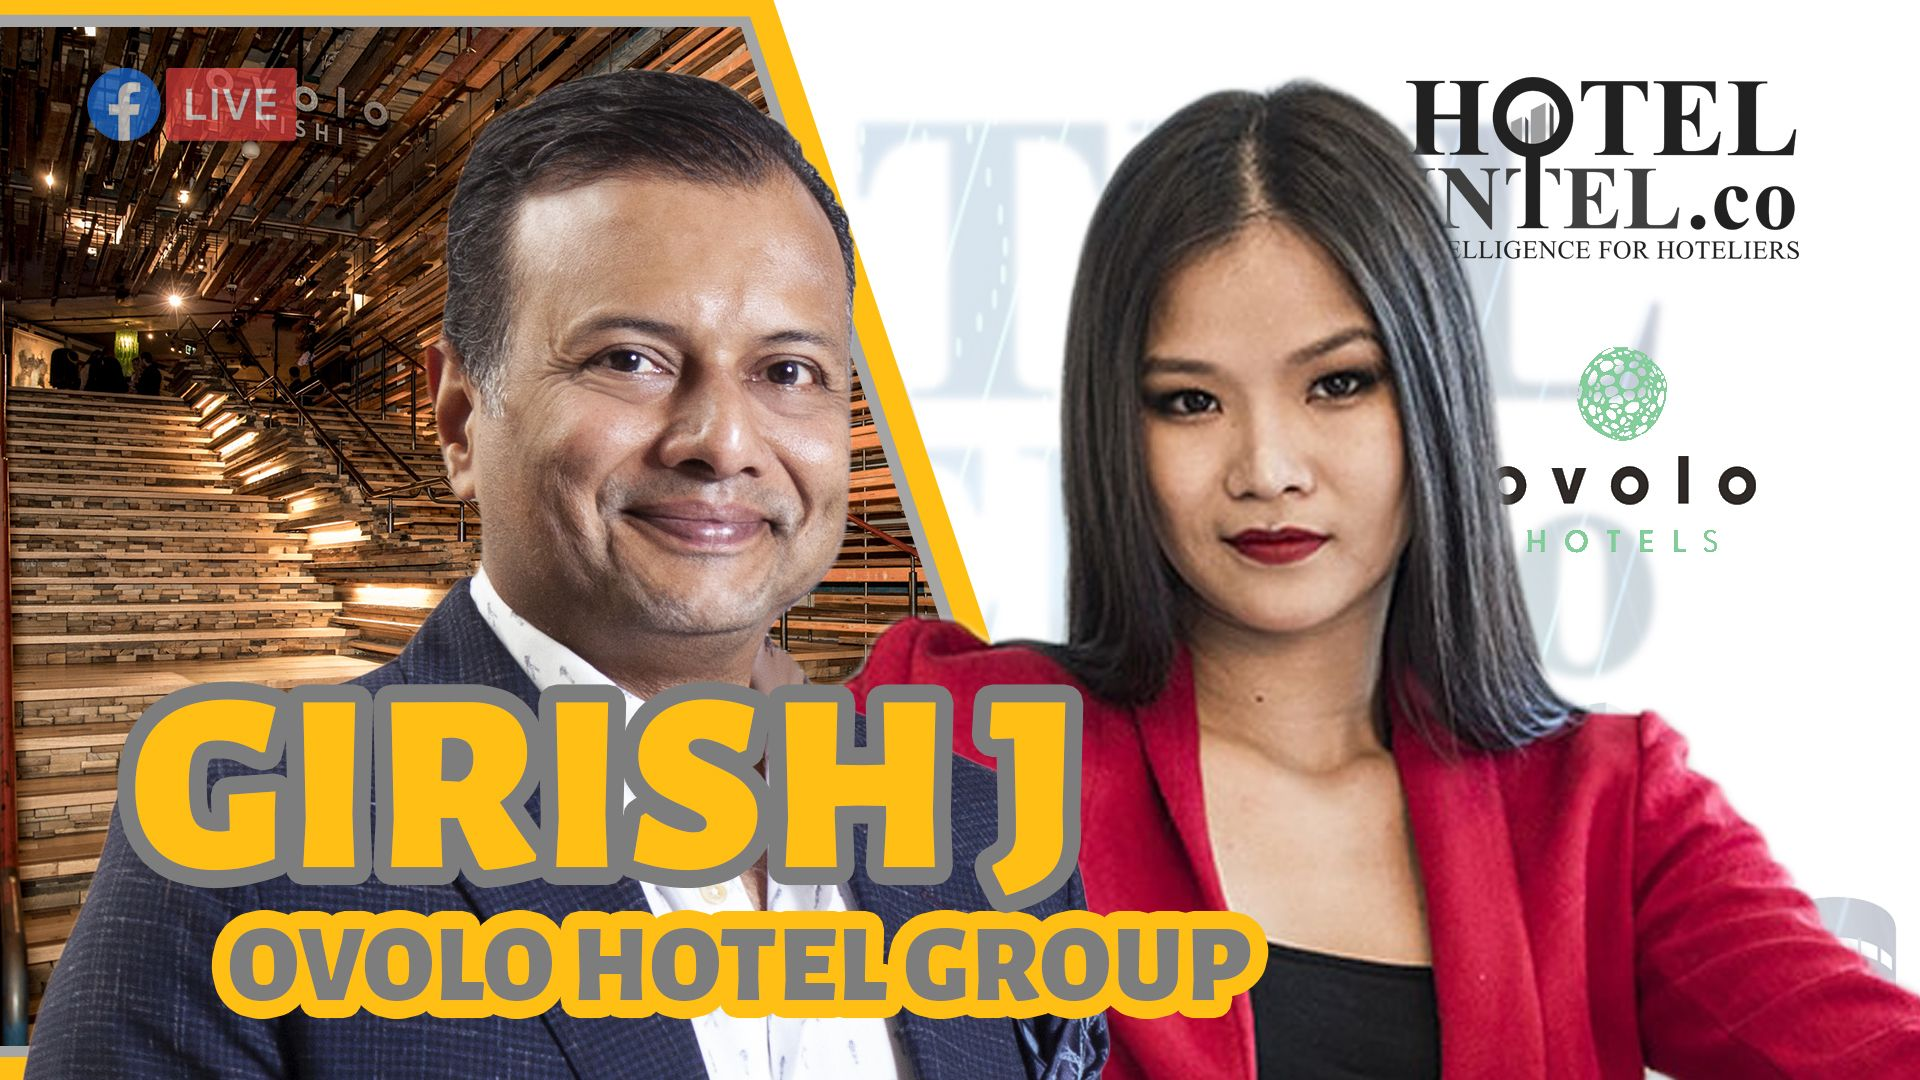 Hotel Mogul Girish J - Ovolo Hotel Group Hotelintel.co Exclusive Interview